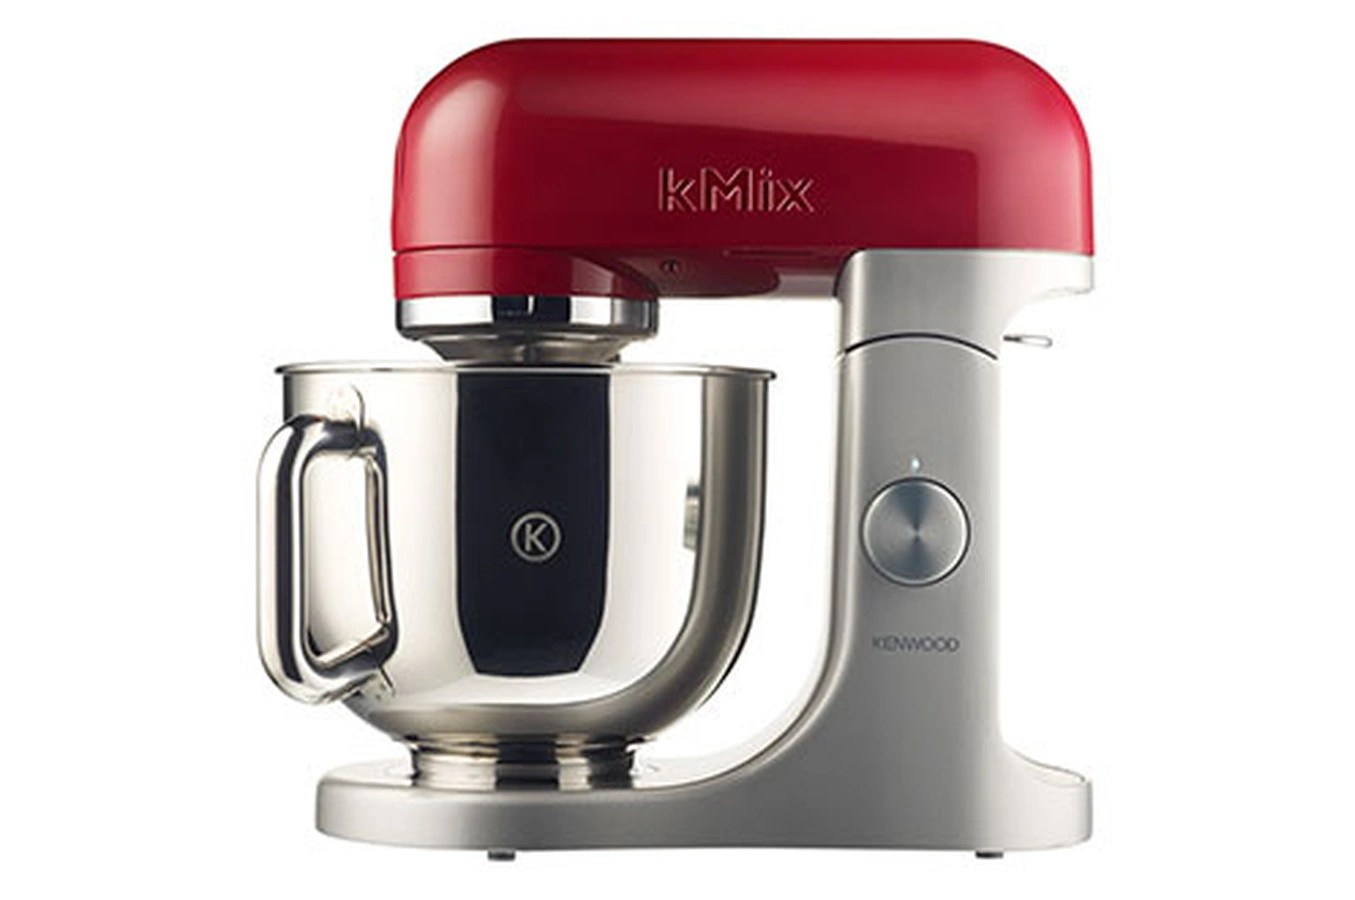 Robot Cuisine Kenwood Robot Patissier Kenwood Kmx51 Kmix Rouge 2537613 Darty